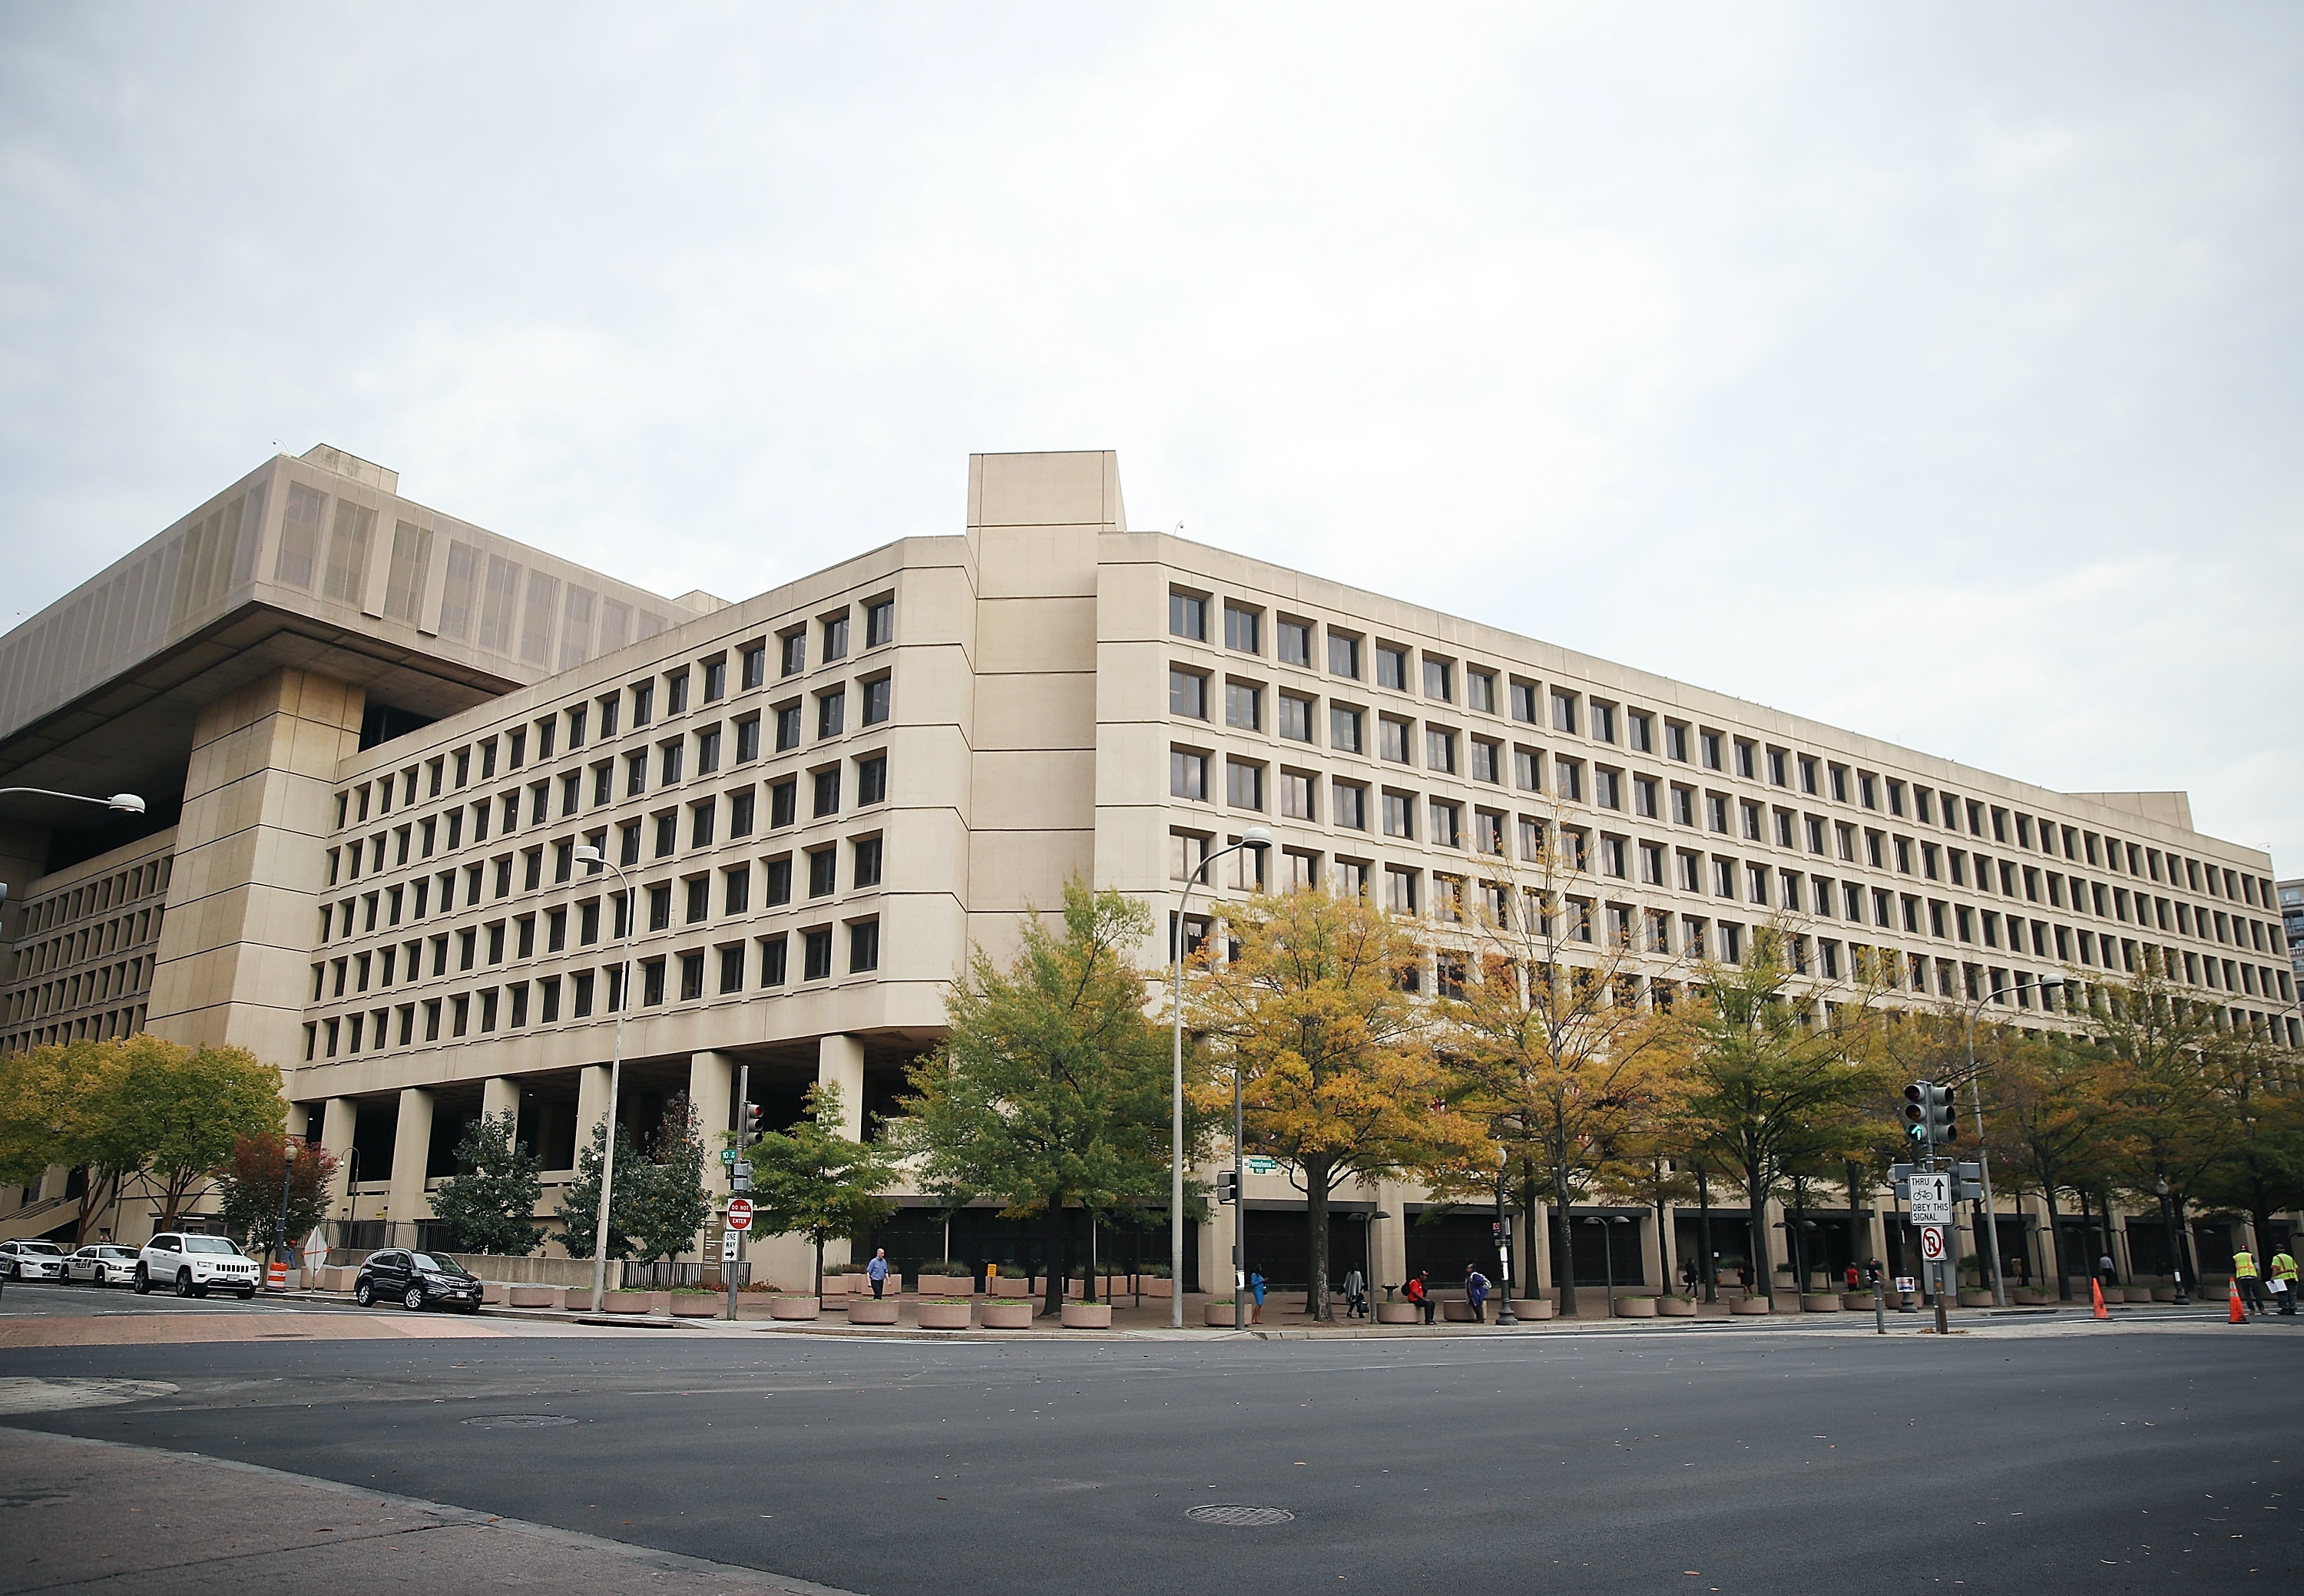 WASHINGTON, DC - NOVEMBER 03: The FBI building is shown on November 3, 2016 in Washington, DC. Last week FBI Director James Comey announced that the bureau is investigating newly discovered messages related to Hillary Clinton's use of a private email server.   (Photo by Mark Wilson/Getty Images)